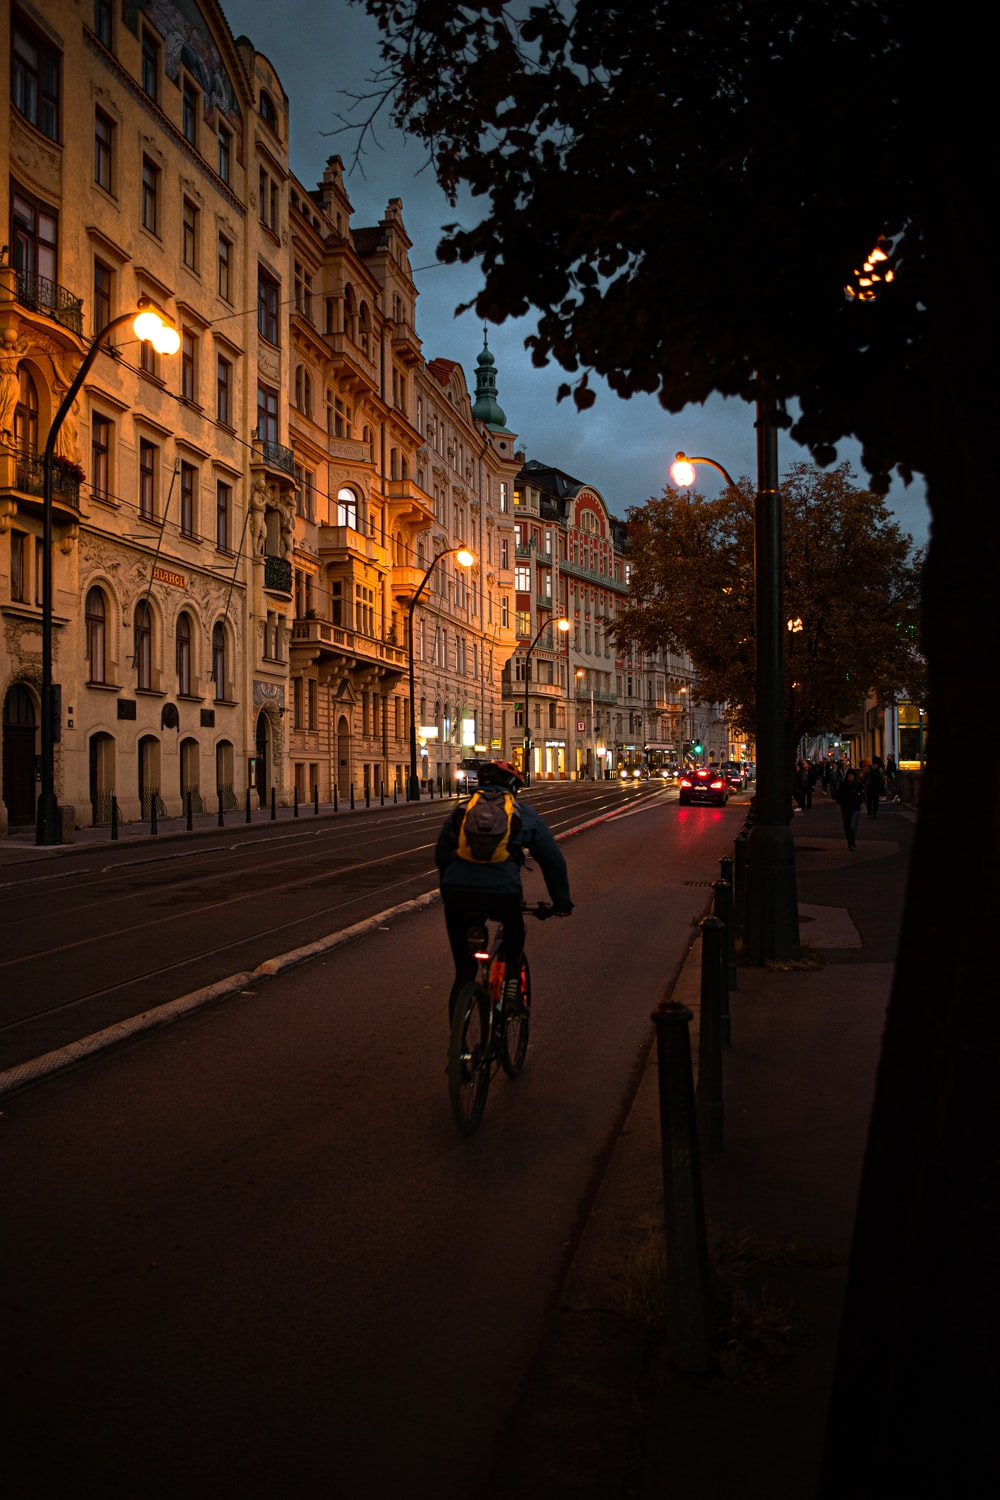 man riding bicycle beside buildings during nighttime